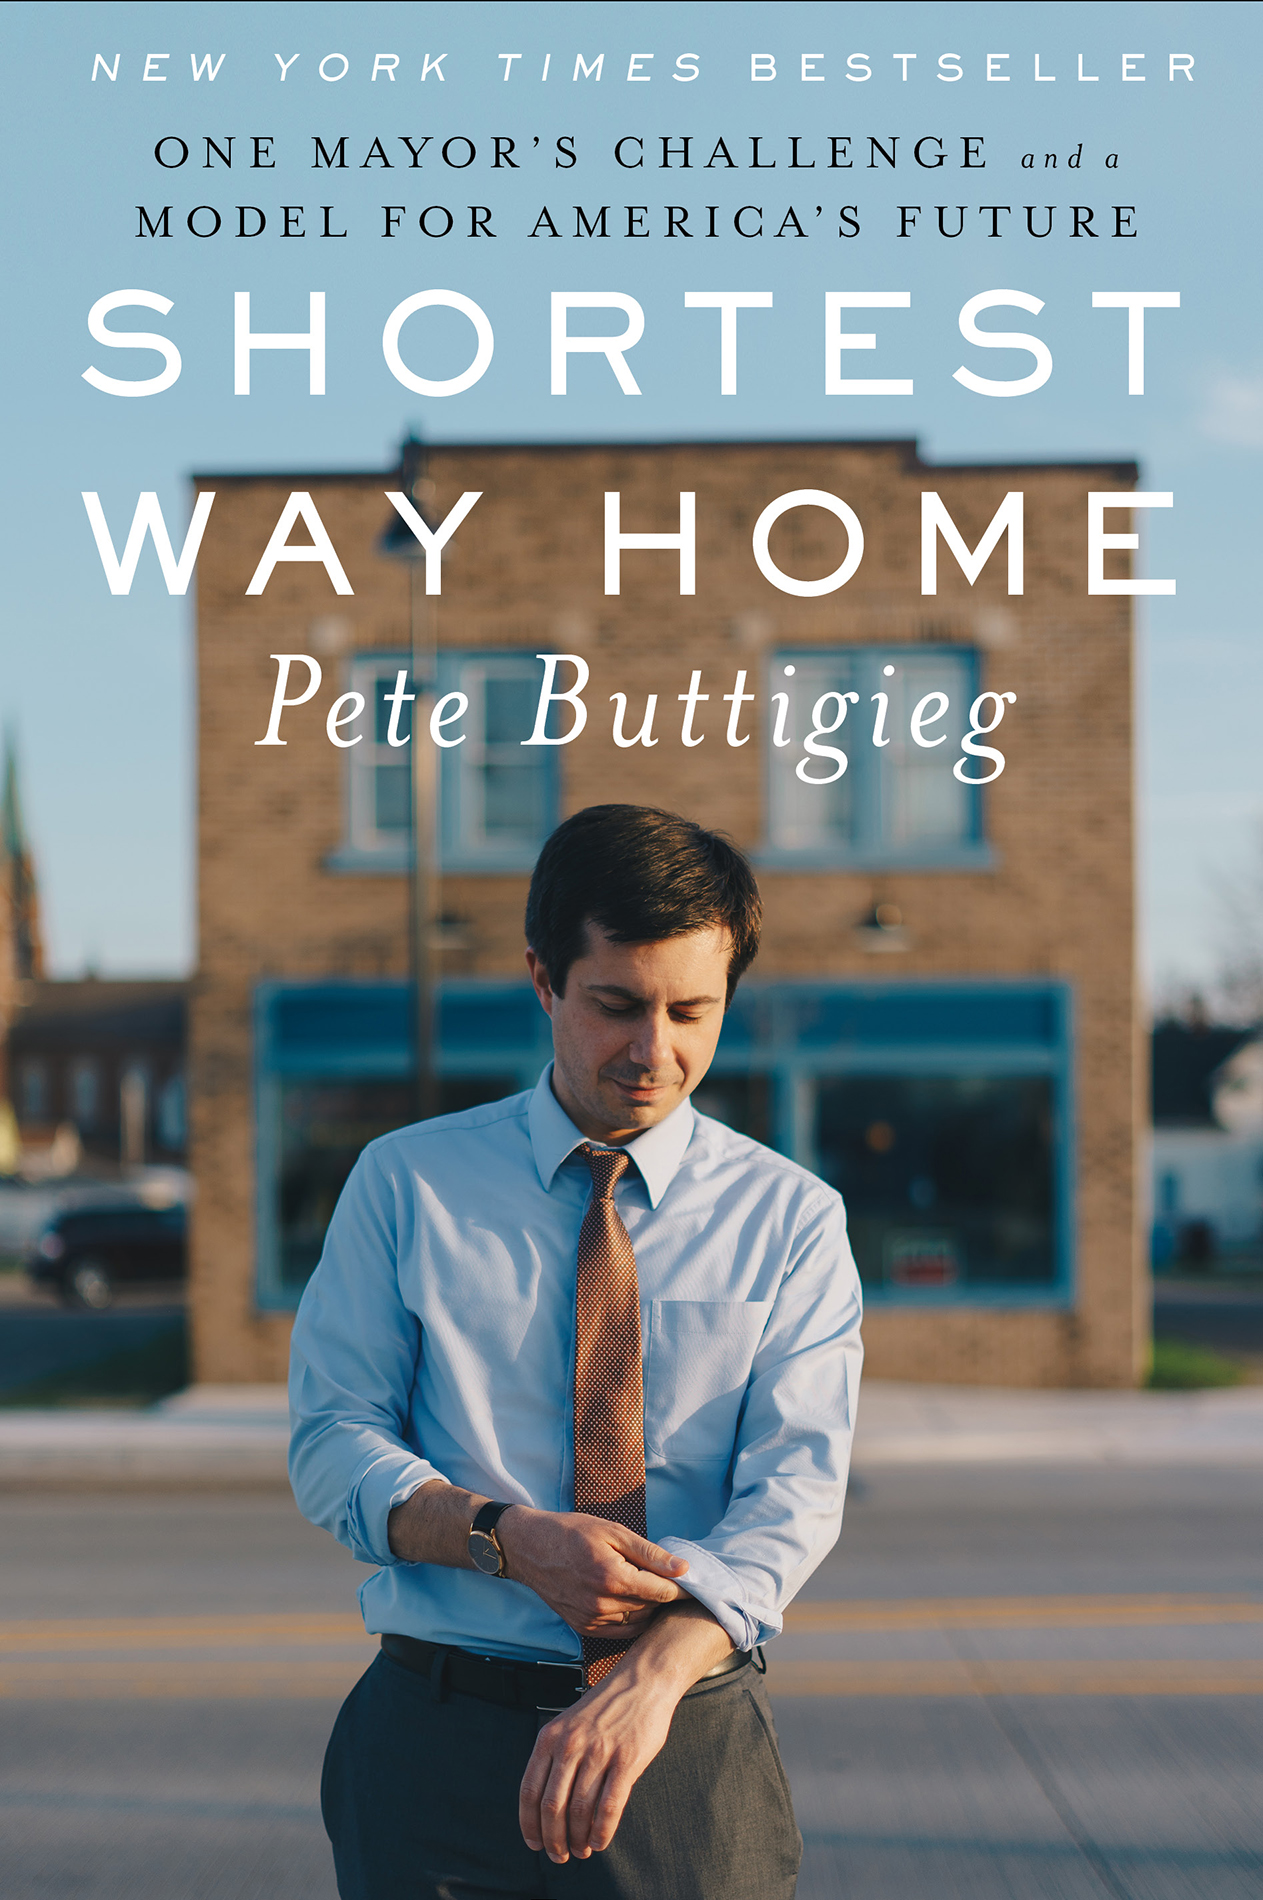 """It Mattered That He Showed Up: On Pete Buttigieg's 'Shortest Way Home' - When this piece came out, it was the #1 most-read article at The Los Angeles Review of Books. Read it HERE.""""Those who deride Millennials as lazy, selfish, and entitled would do well to consider Pete Buttigieg, the 37-year-old mayor of South Bend, Indiana. Buttigieg has a résumé that would put most baby boomers to shame. Since graduating from Harvard, in 2004, he's earned a Rhodes Scholarship; worked as a McKinsey consultant; served in Afghanistan with the US Navy; and won city-wide office with more than 70 percent of the vote. Twice."""""""